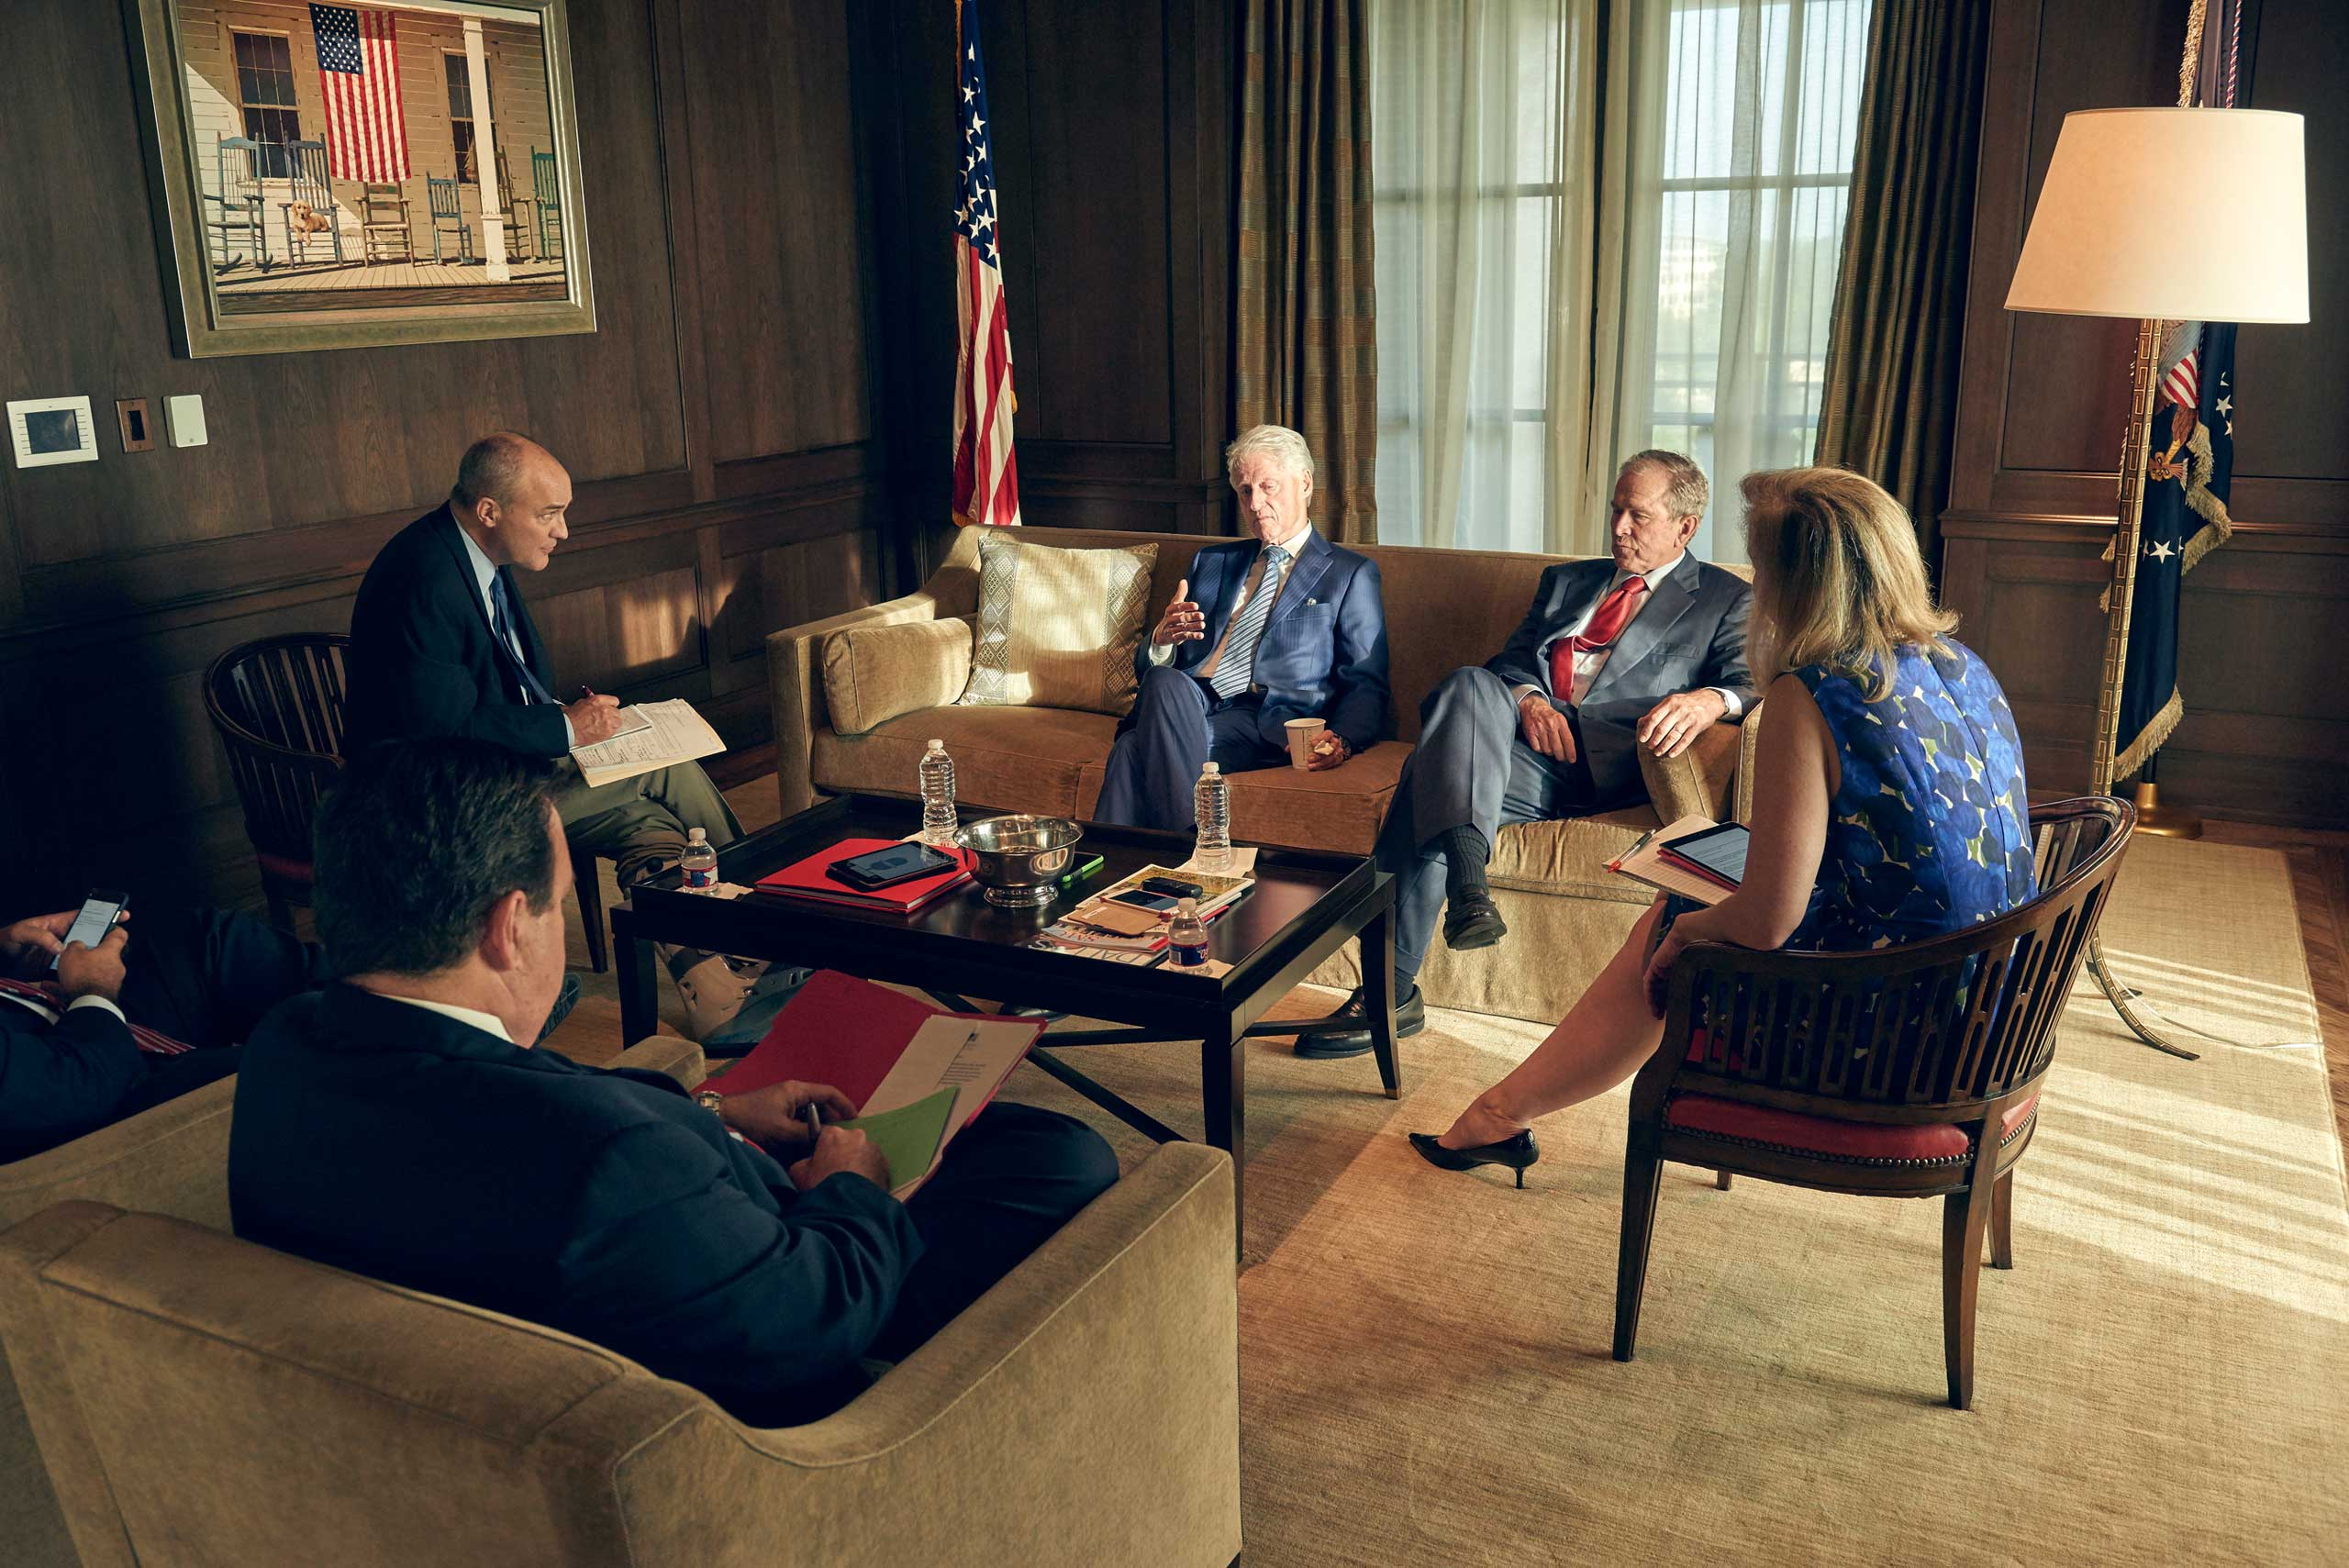 Former presidents Bill Clinton and George W. Bush in discussion with TIME's deputy managing editor Michael Duffy (far left) and editor Nancy Gibbs (right)